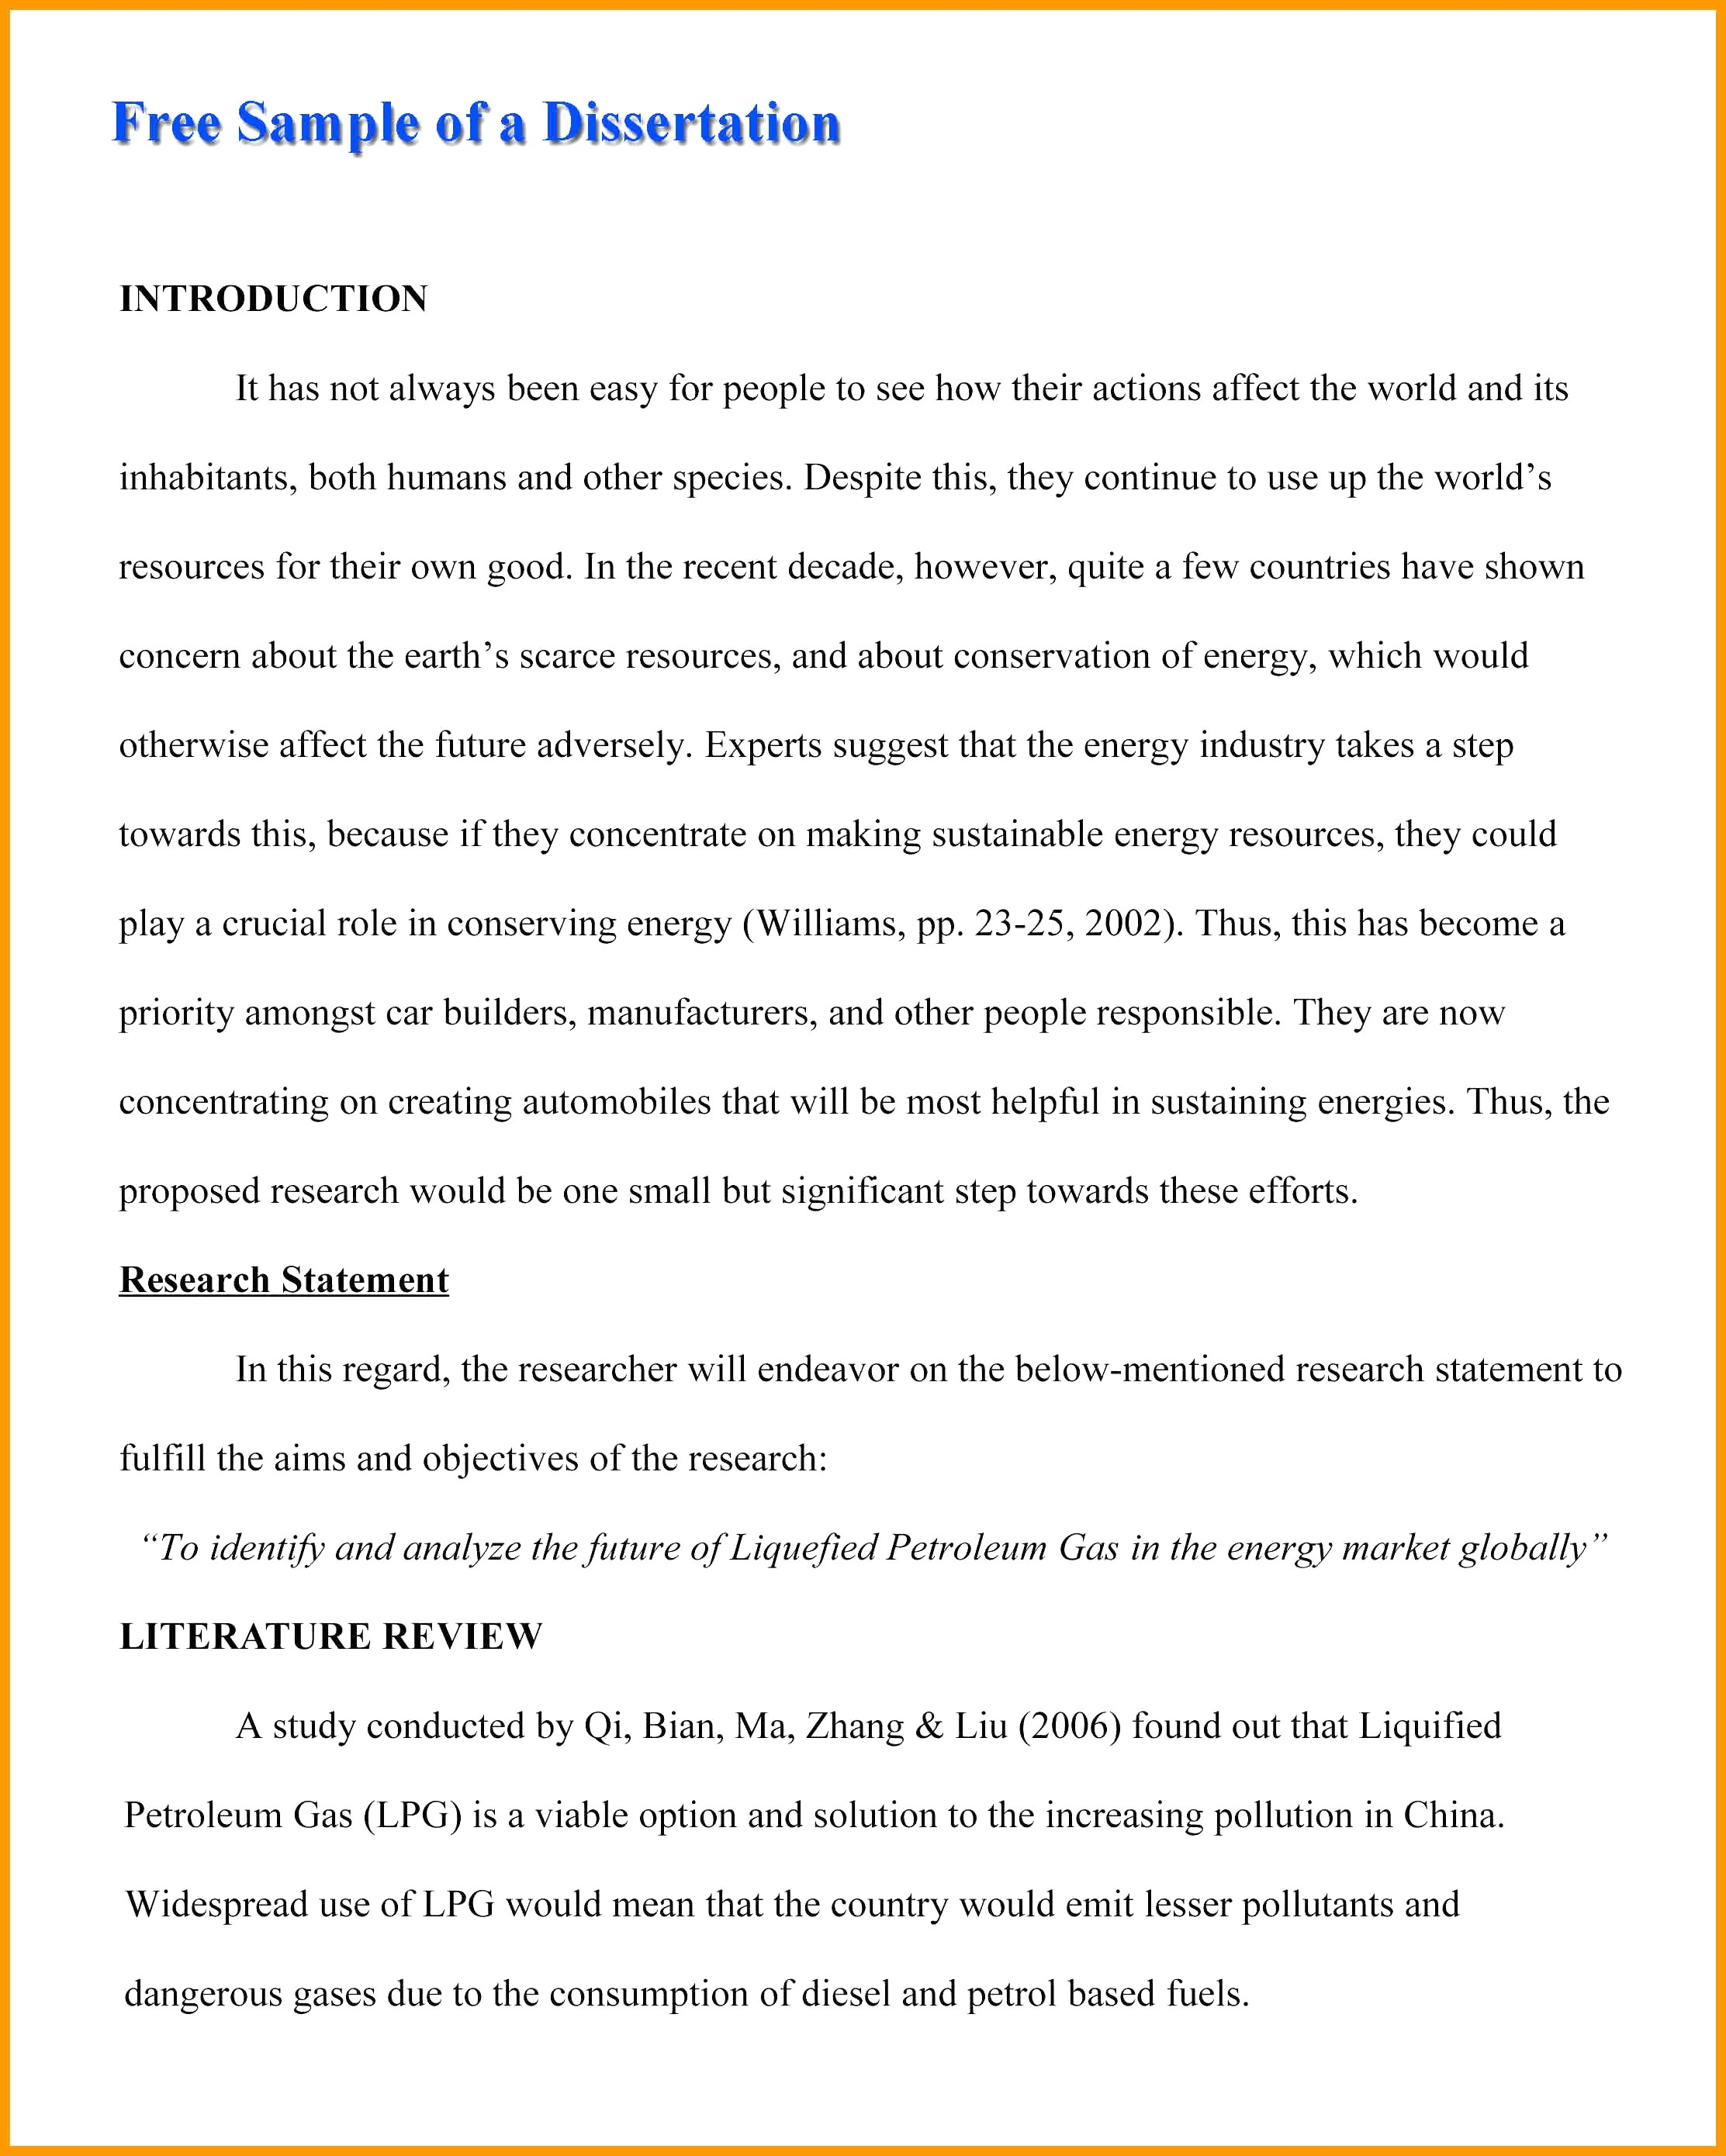 004 War On Drugs Research Paper Outline Filename Books Historical Pertaining To History Essay Impressive Rubric Middle School Topics Before 1500 Full